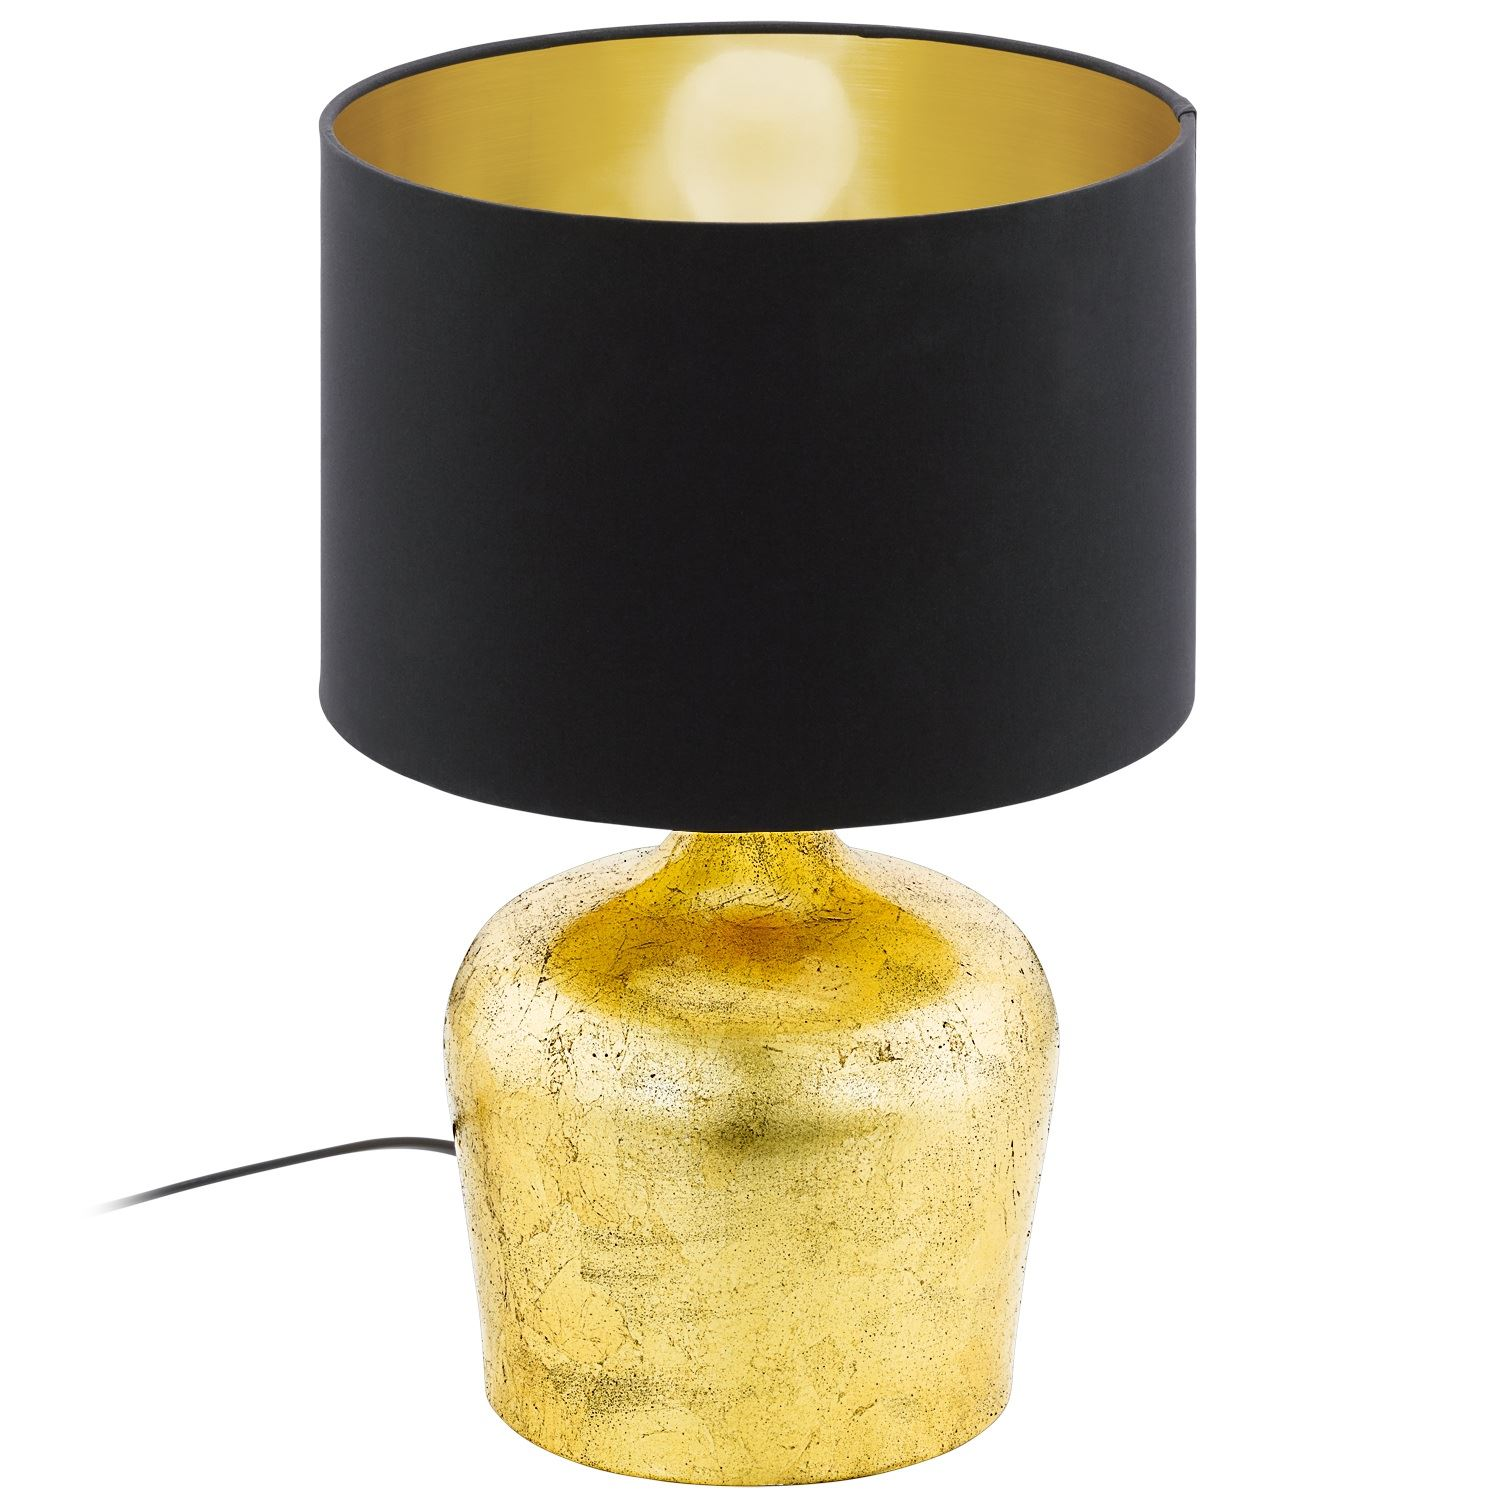 Manalba Table Lamp Light E27 Height 380mm Steel Gold Black Fabric Shade